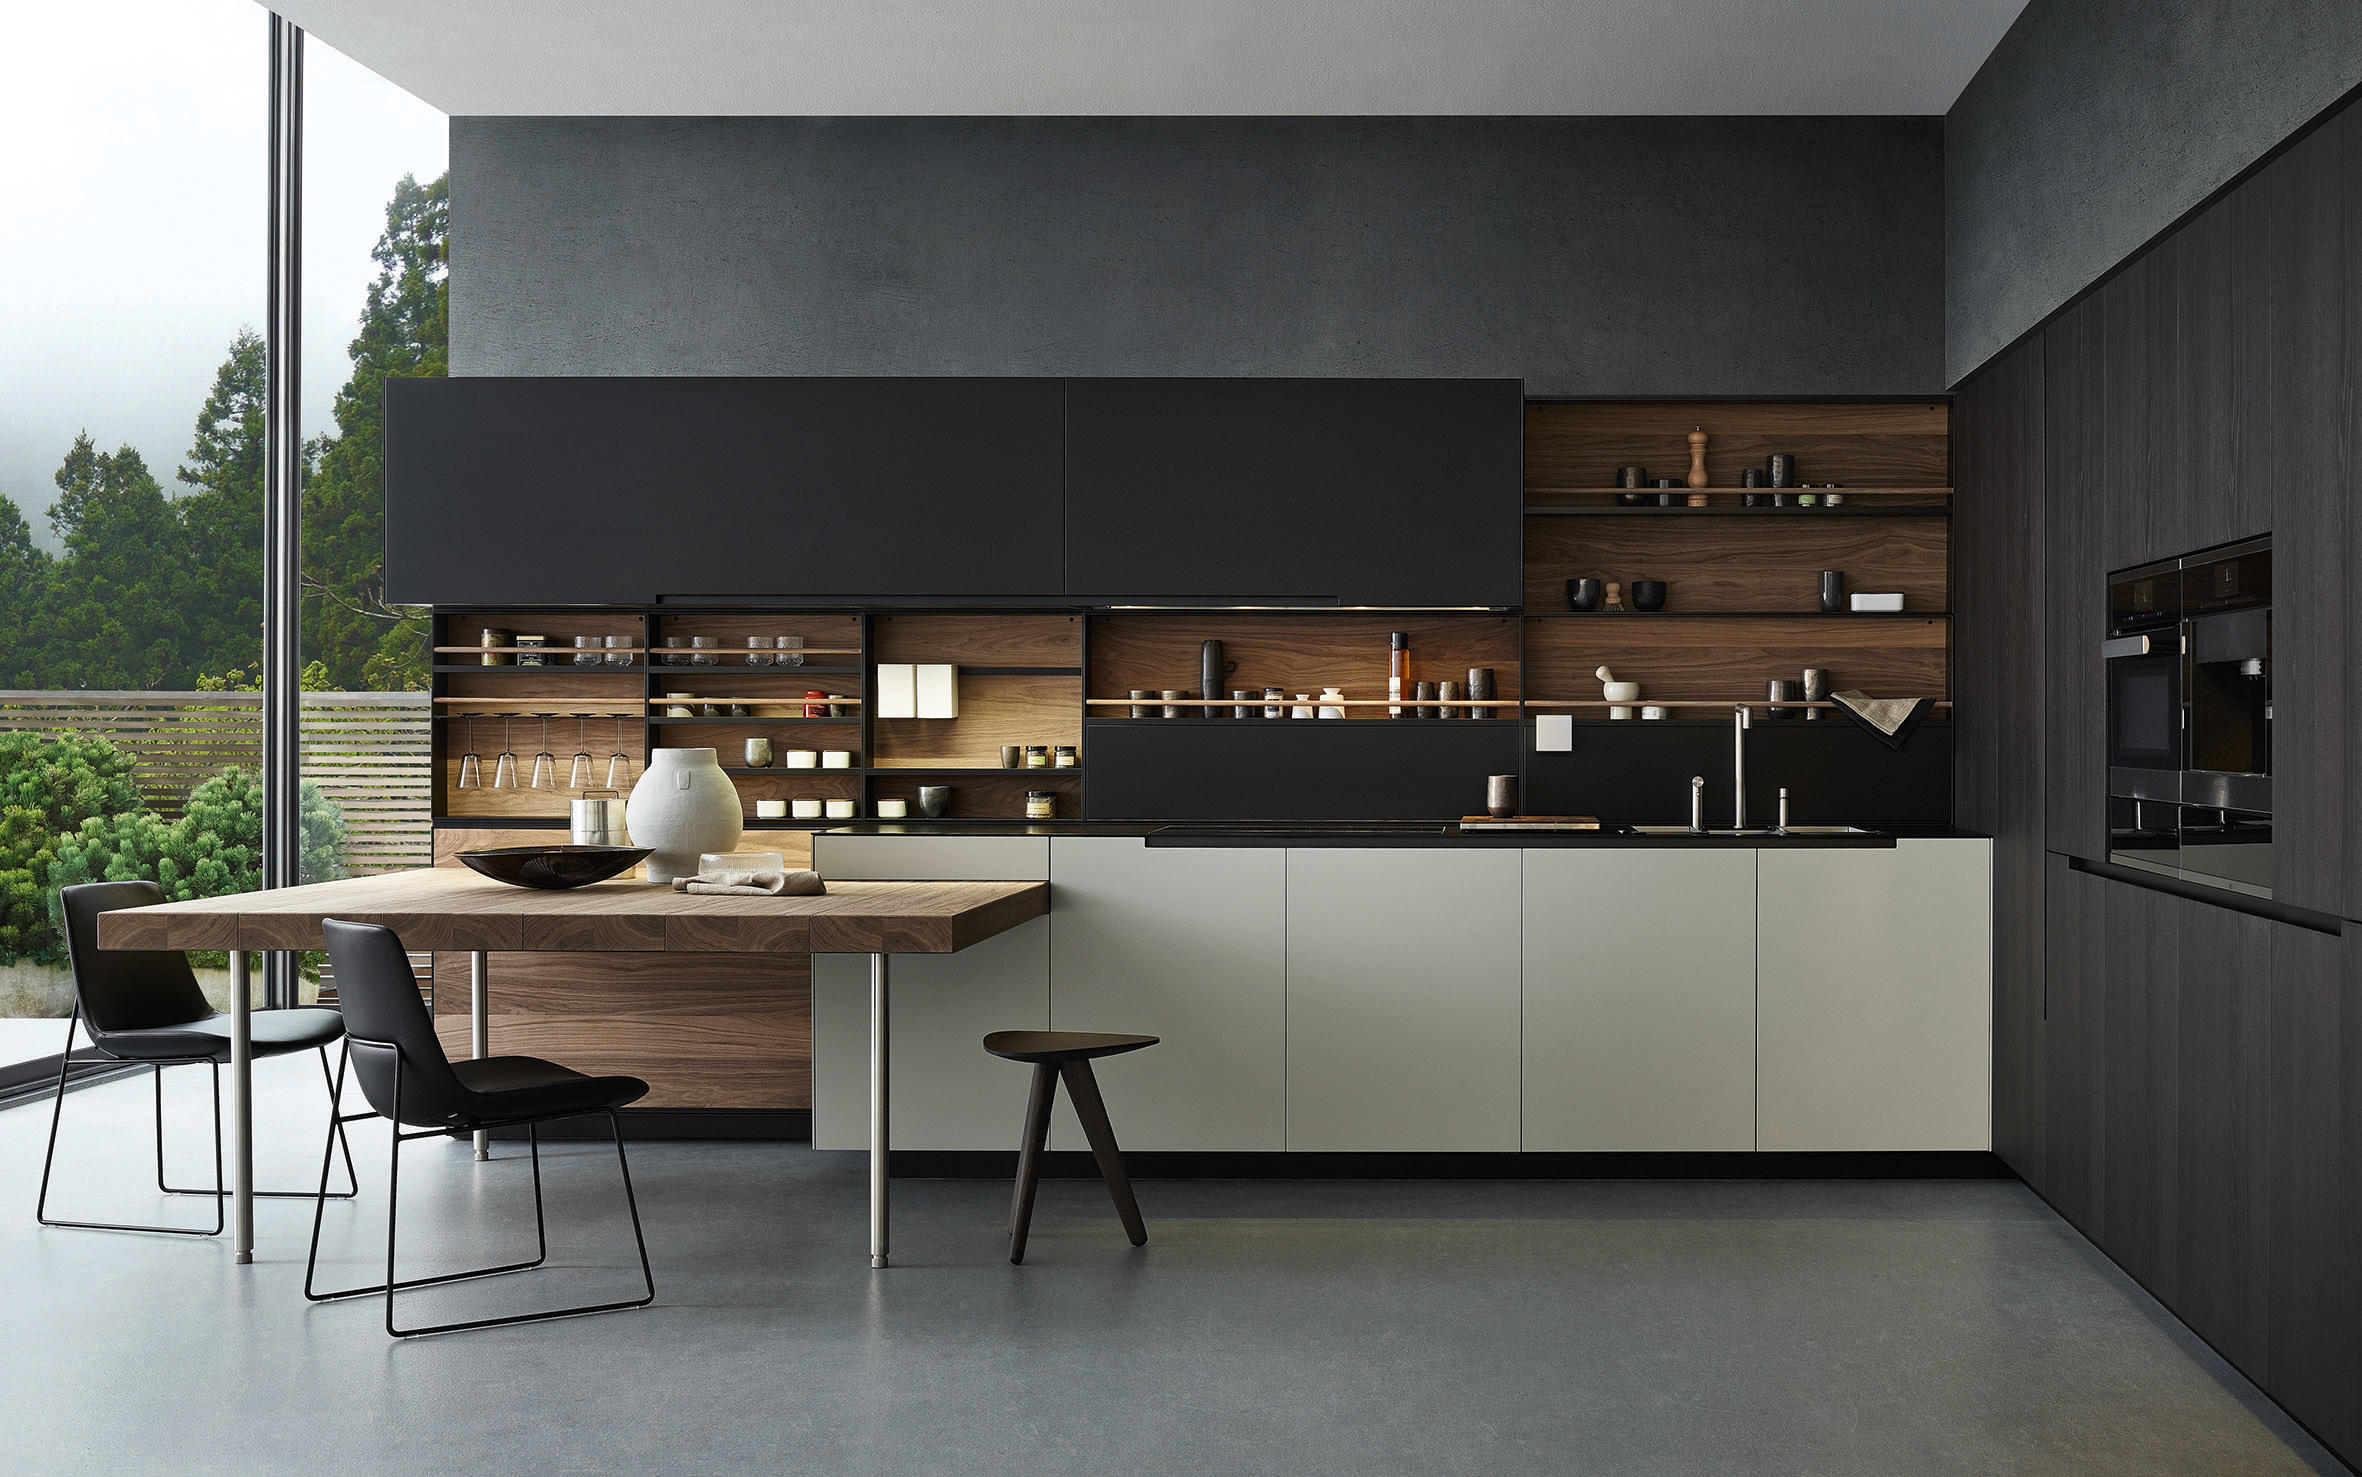 Outdoor Küche 2014 Phoenix Fitted Kitchens From Poliform Architonic